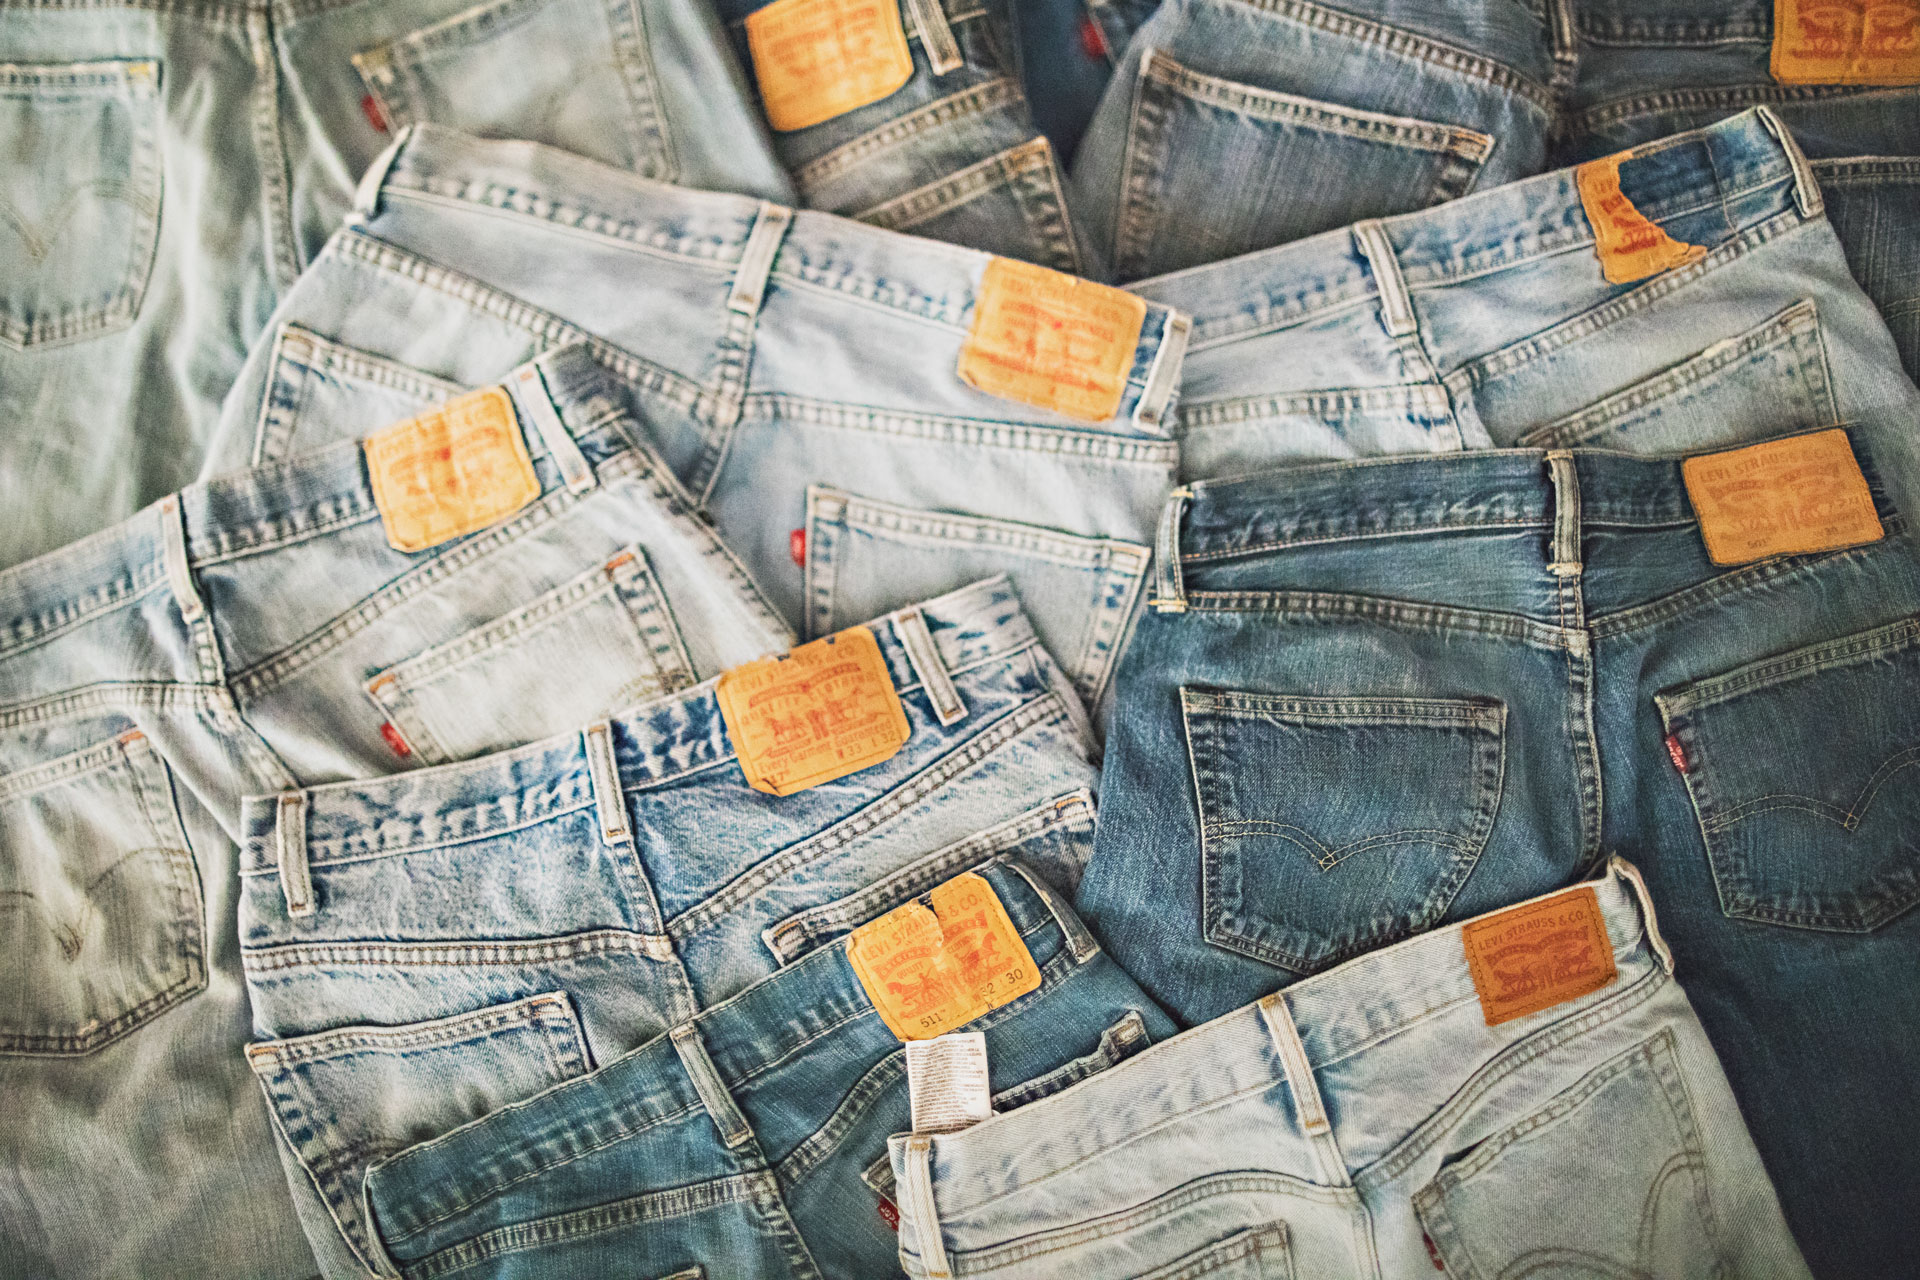 6ba85b46da Finding the Right Jeans | Vintage Levi's Fit Guide - This Mom's ...